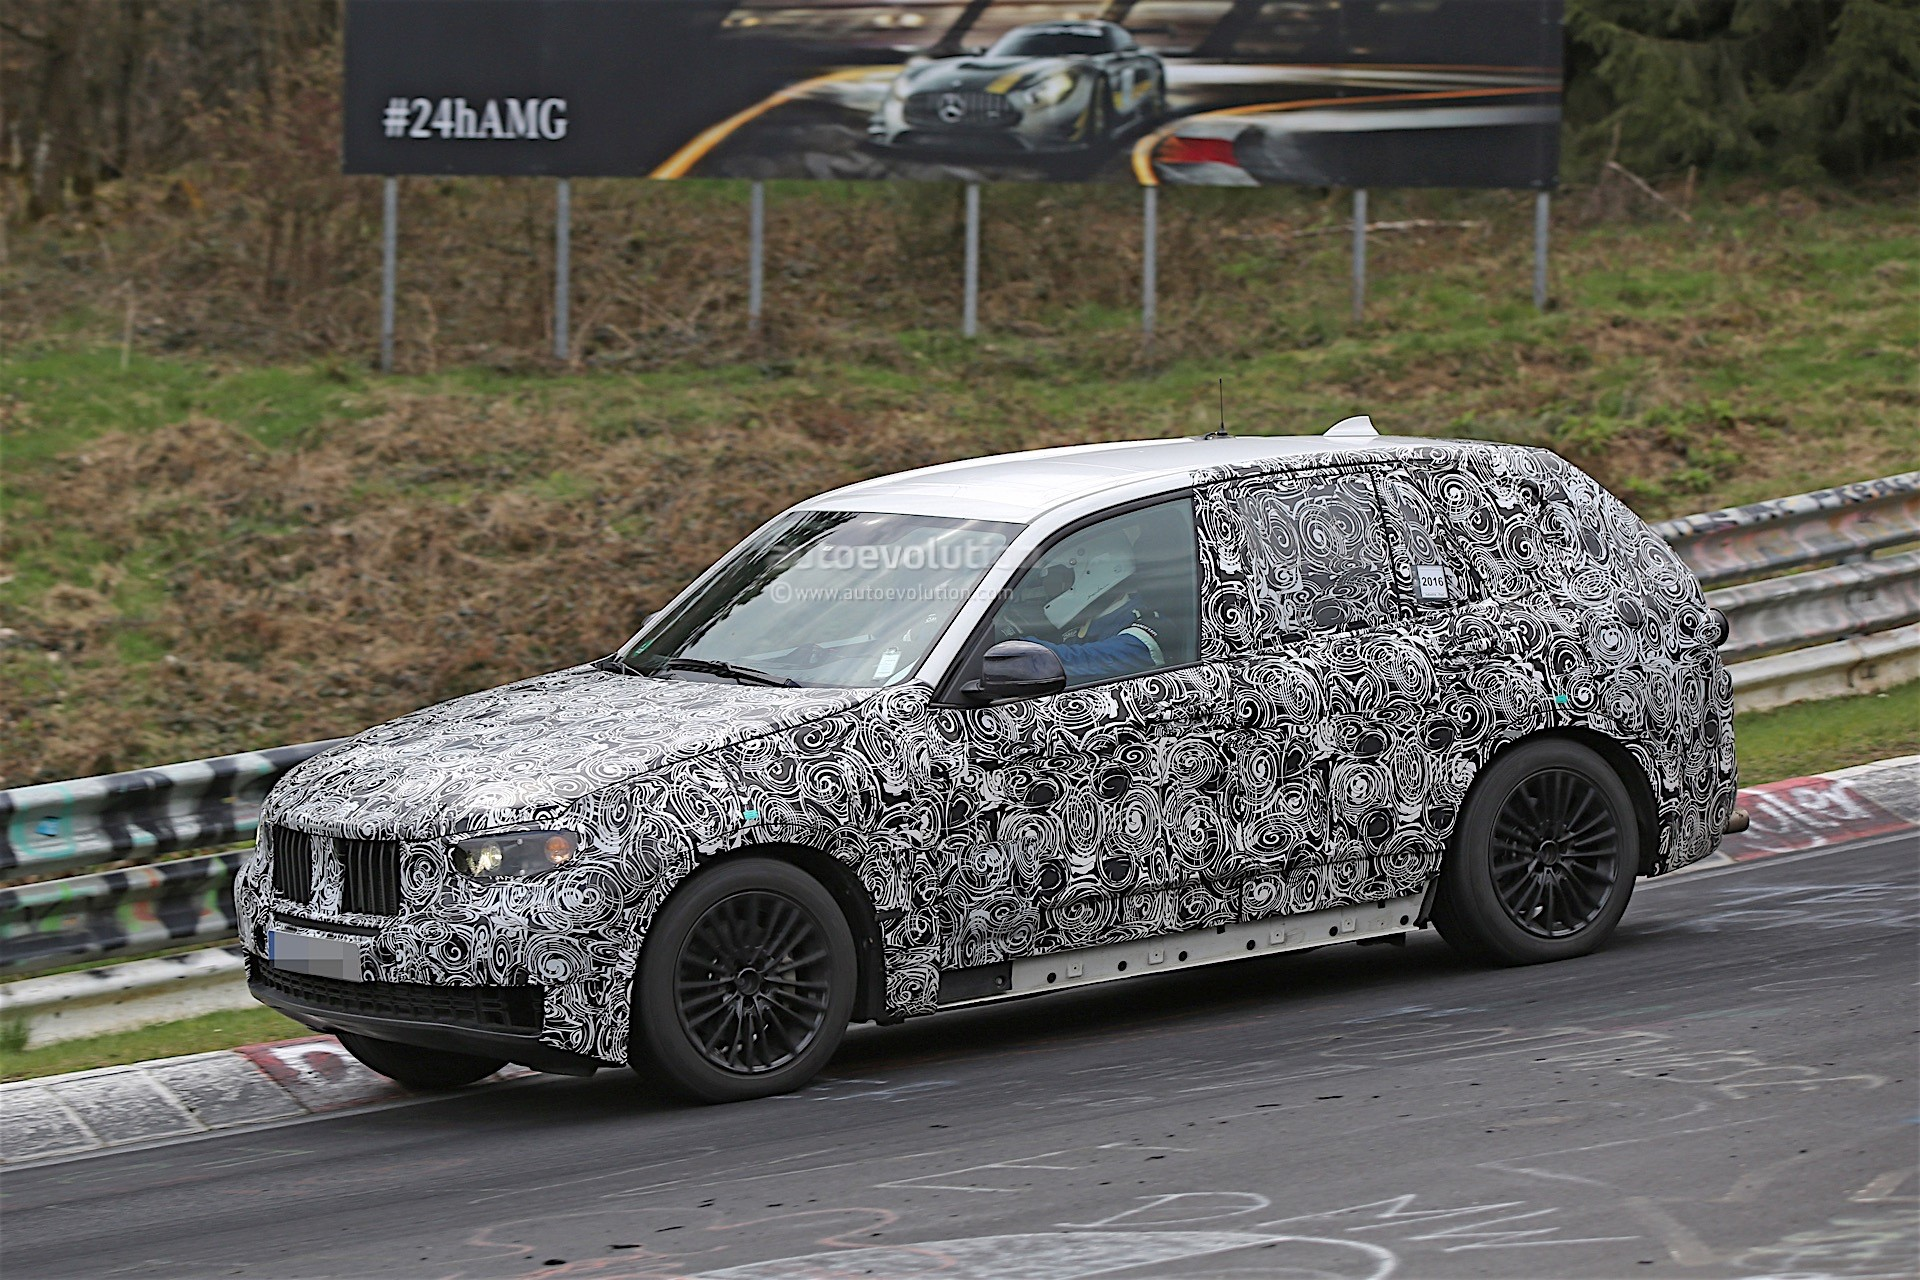 next-gen-2​019-bmw-x5​-laps-nurb​urgring-lo​oks-less-n​ose-heavy-​than-curre​nt-model_5